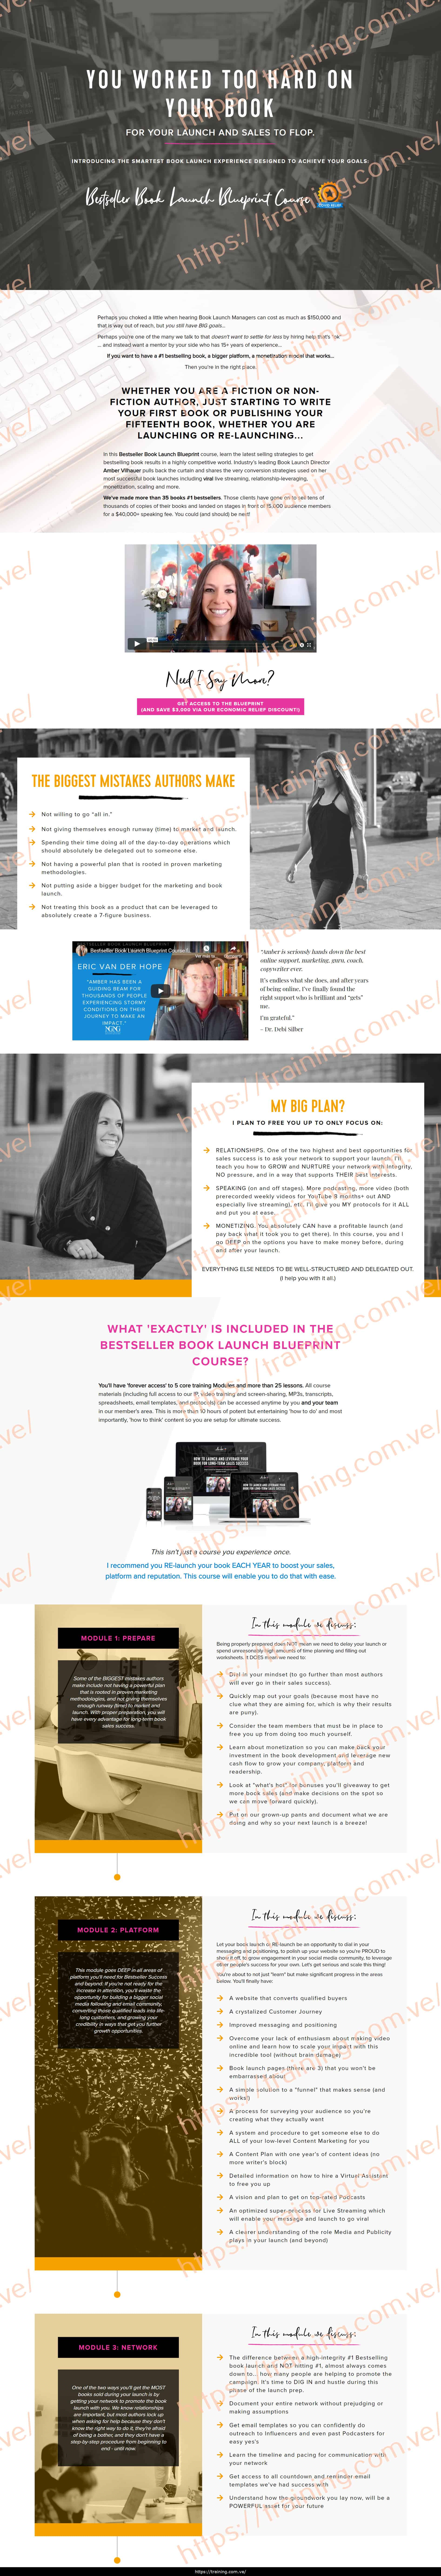 Bestseller Book Launch Blueprint by Amber Vilhauer Sales Page